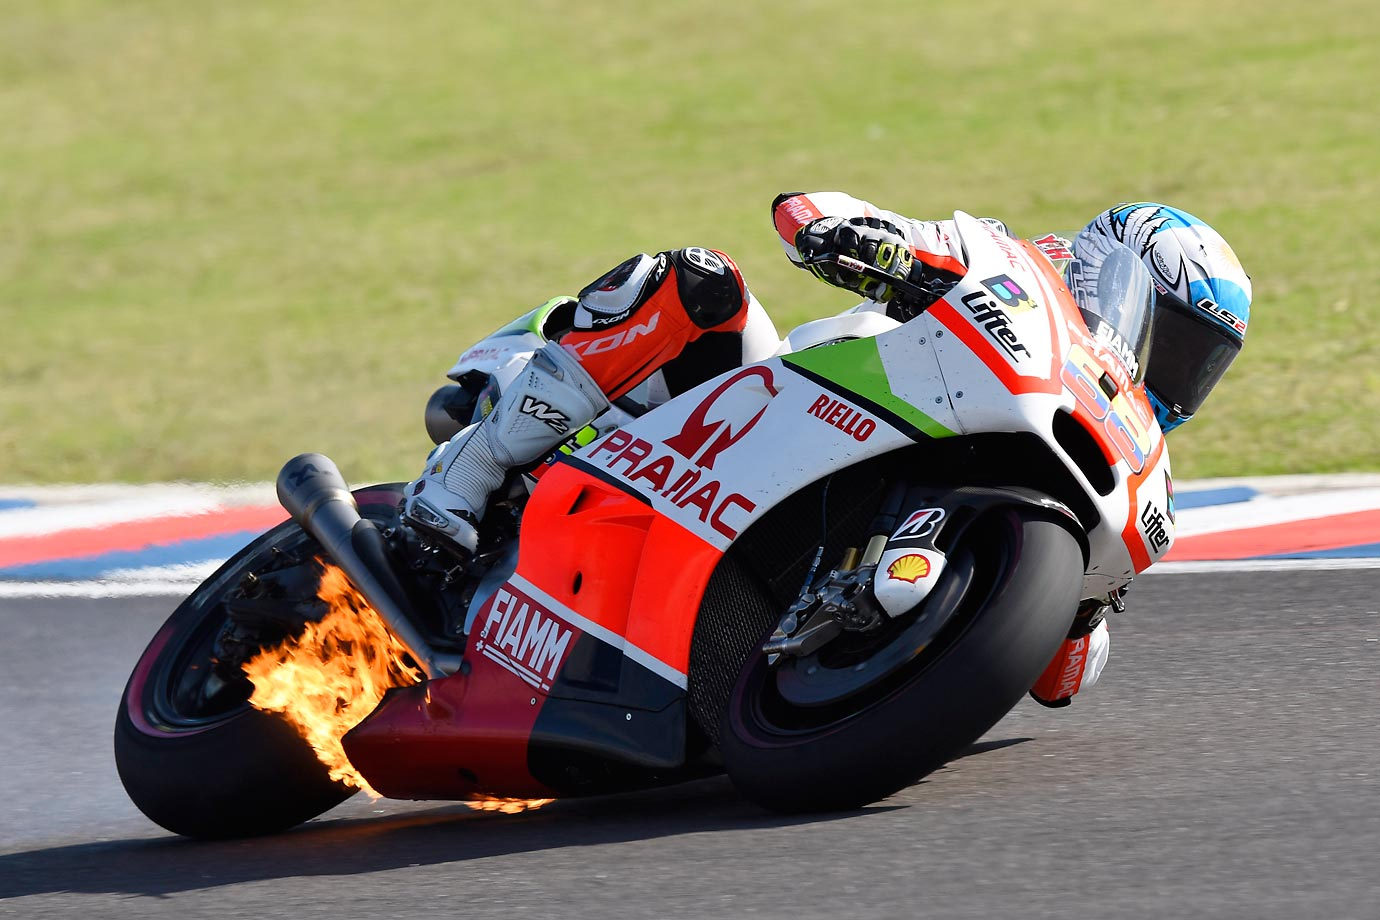 Flames on Yonny Hernandez's bike during the Moto GP race in Argentina.